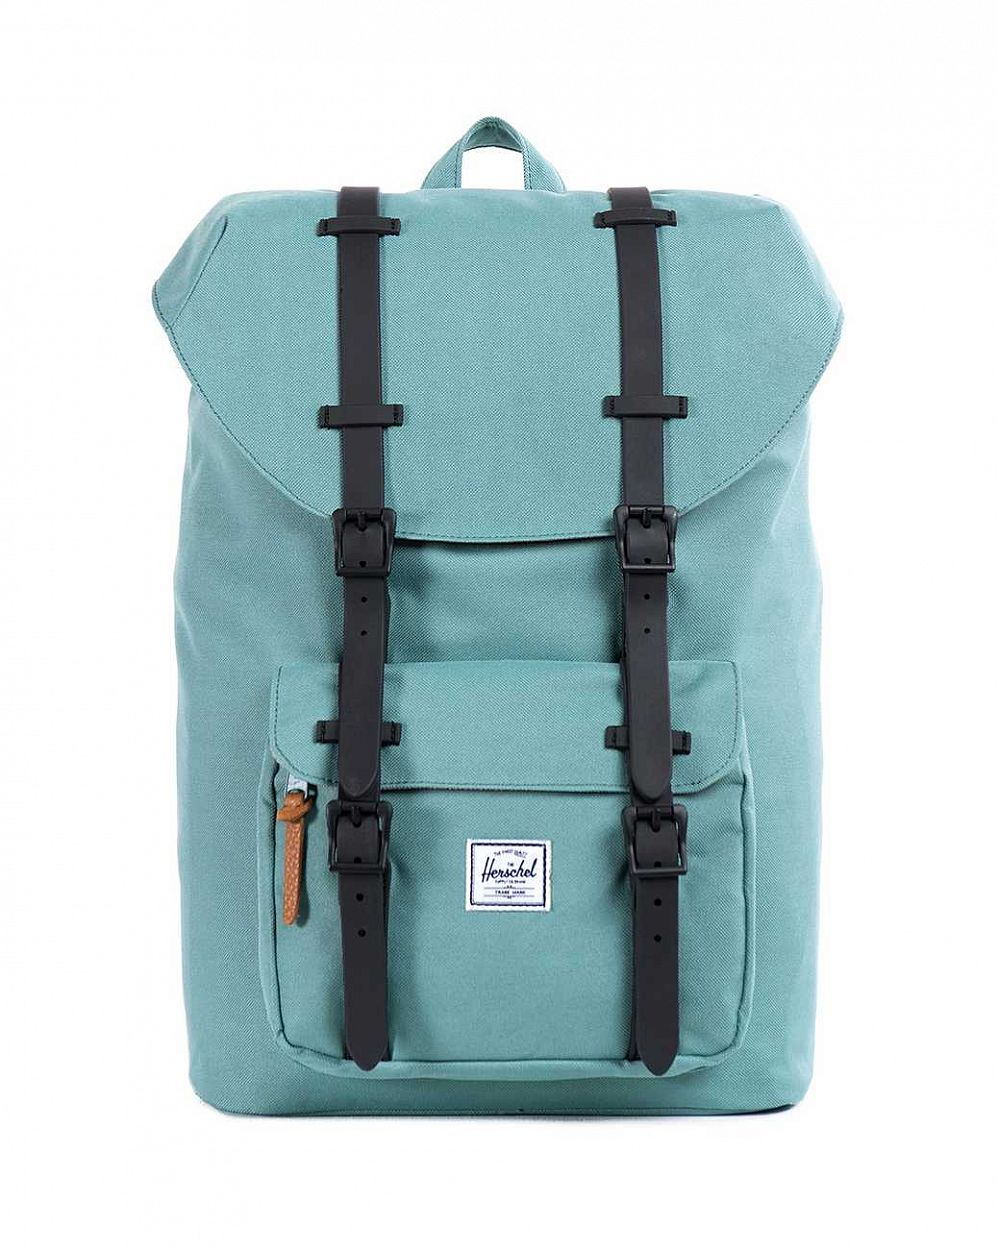 купить Рюкзак Herschel Little America Mid-Volume Seafoam Black Rubber в Москве